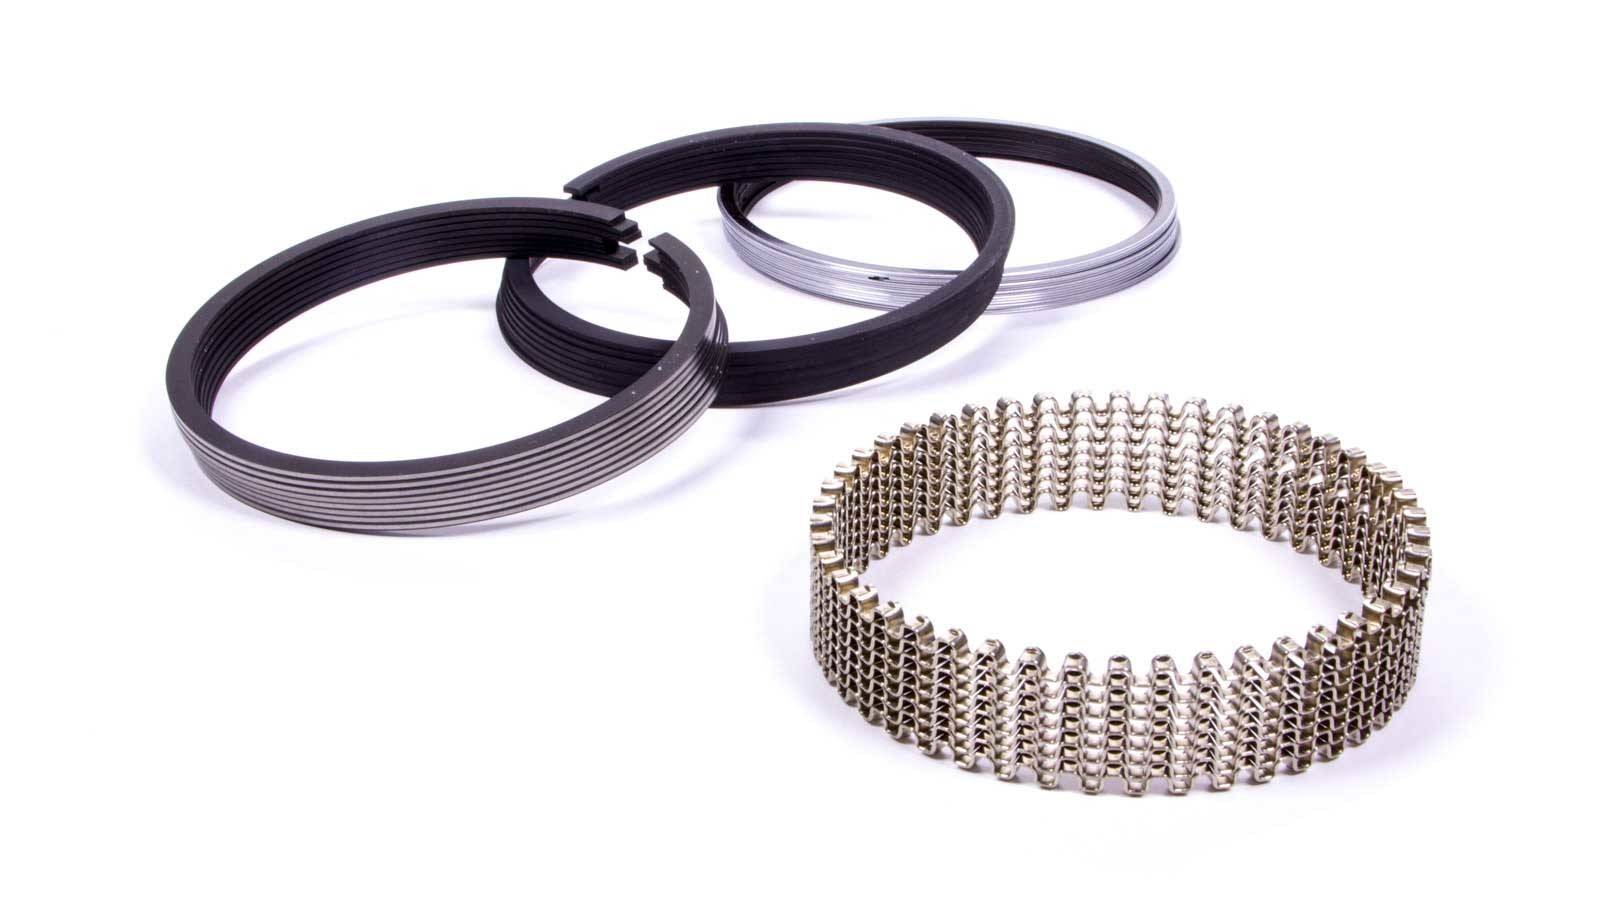 JE Pistons S100S8-4040-5 Piston Rings, Sportsman Series, 4.040 in Bore, File Fit, 1/16 x 1/16 x 3/16 in Thick, Standard Tension, Plasma Moly, 8 Cylinder, Kit